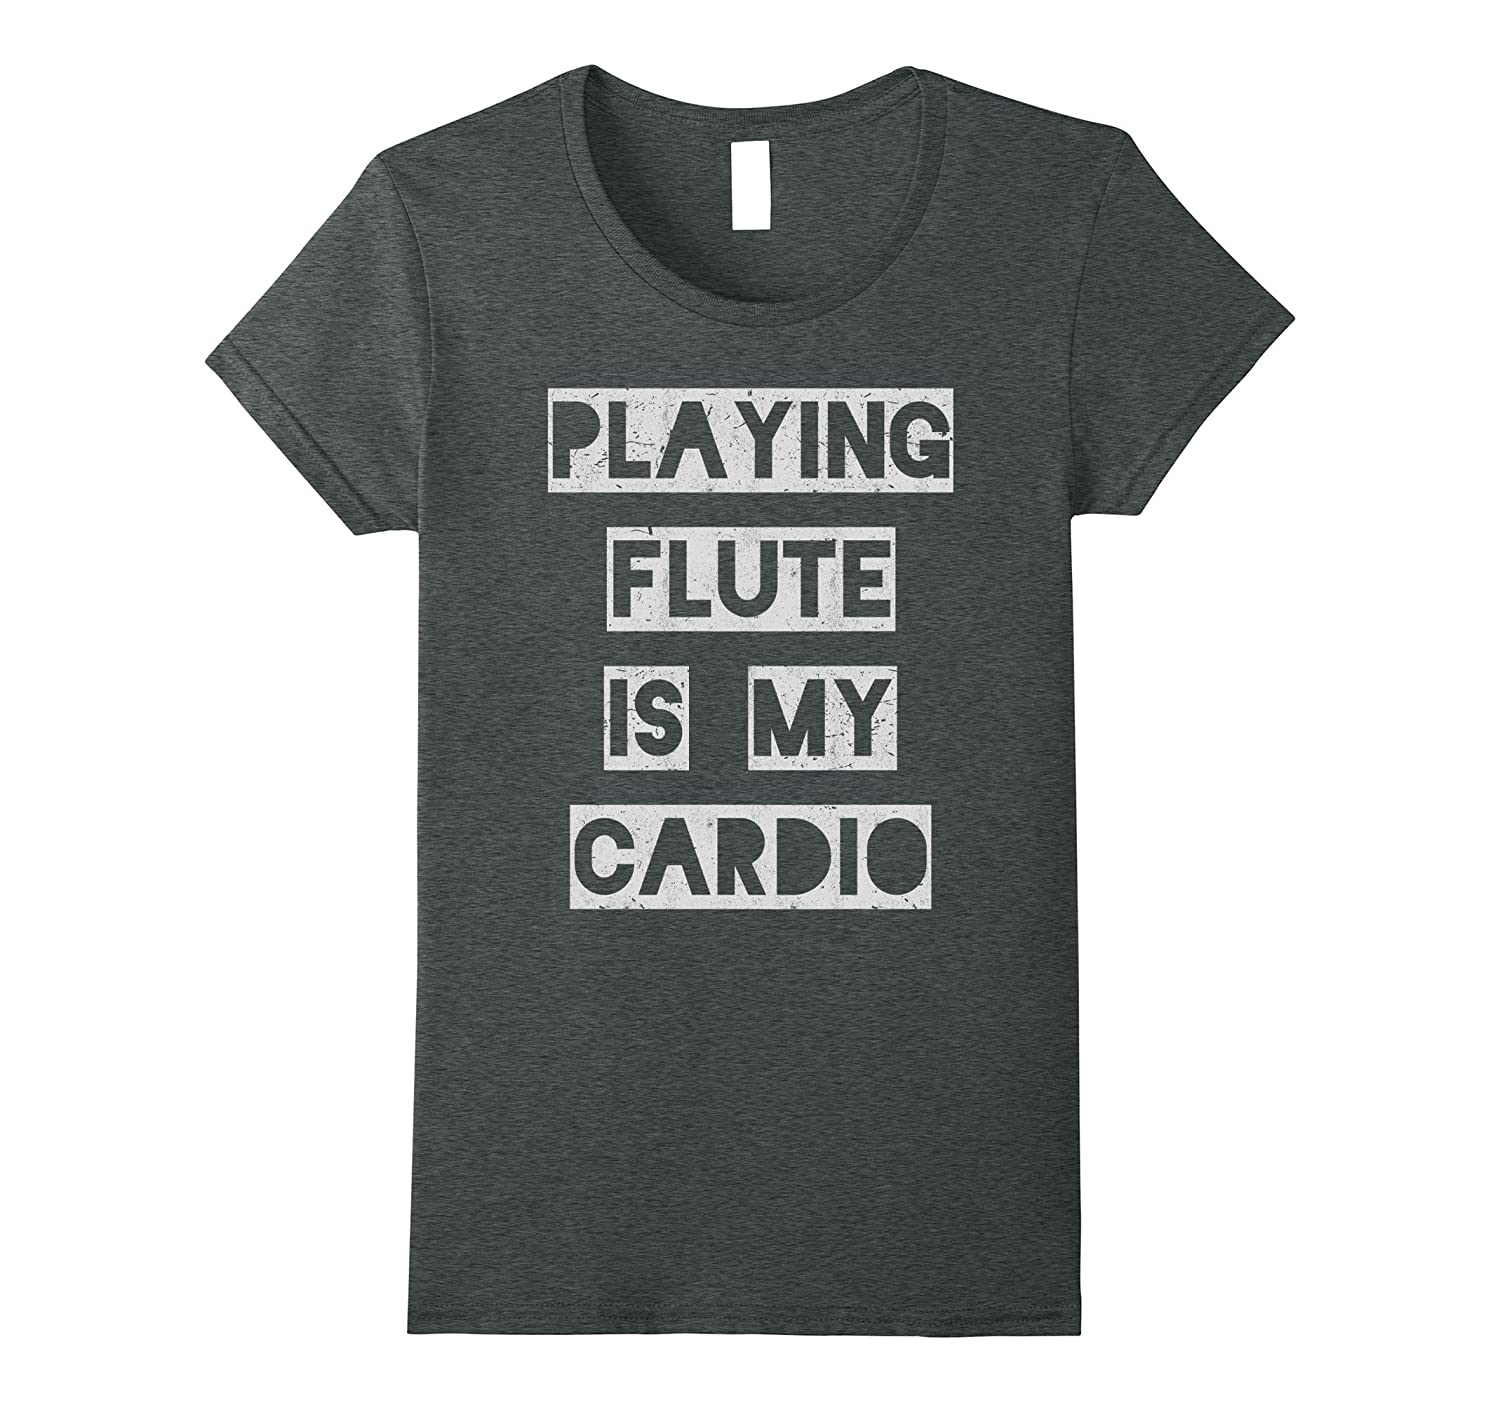 Playing flute is my cardio T-Shirt